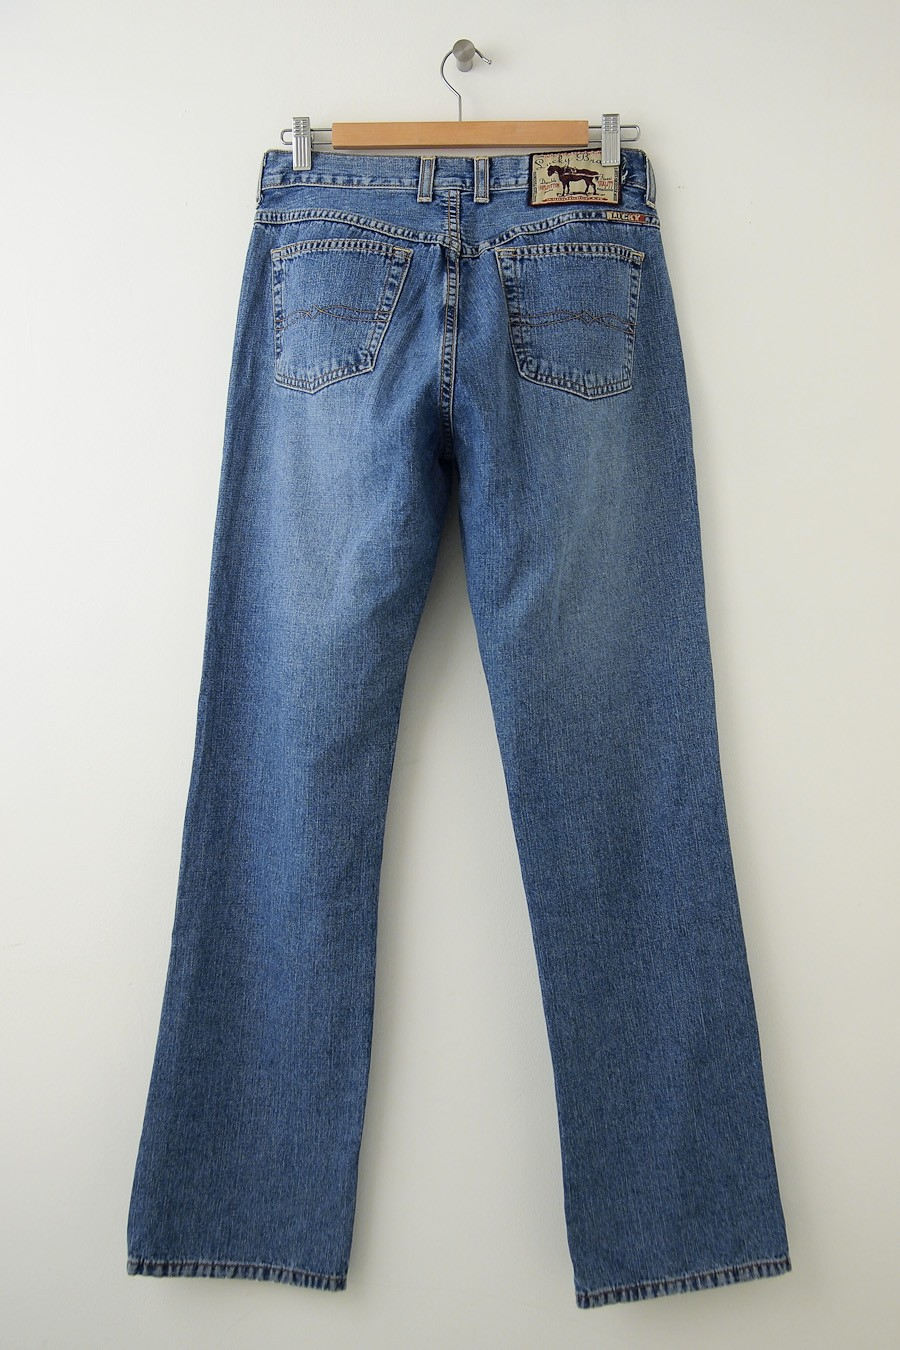 Lucky Brand Style 8159390 Jeans Women S 28 6